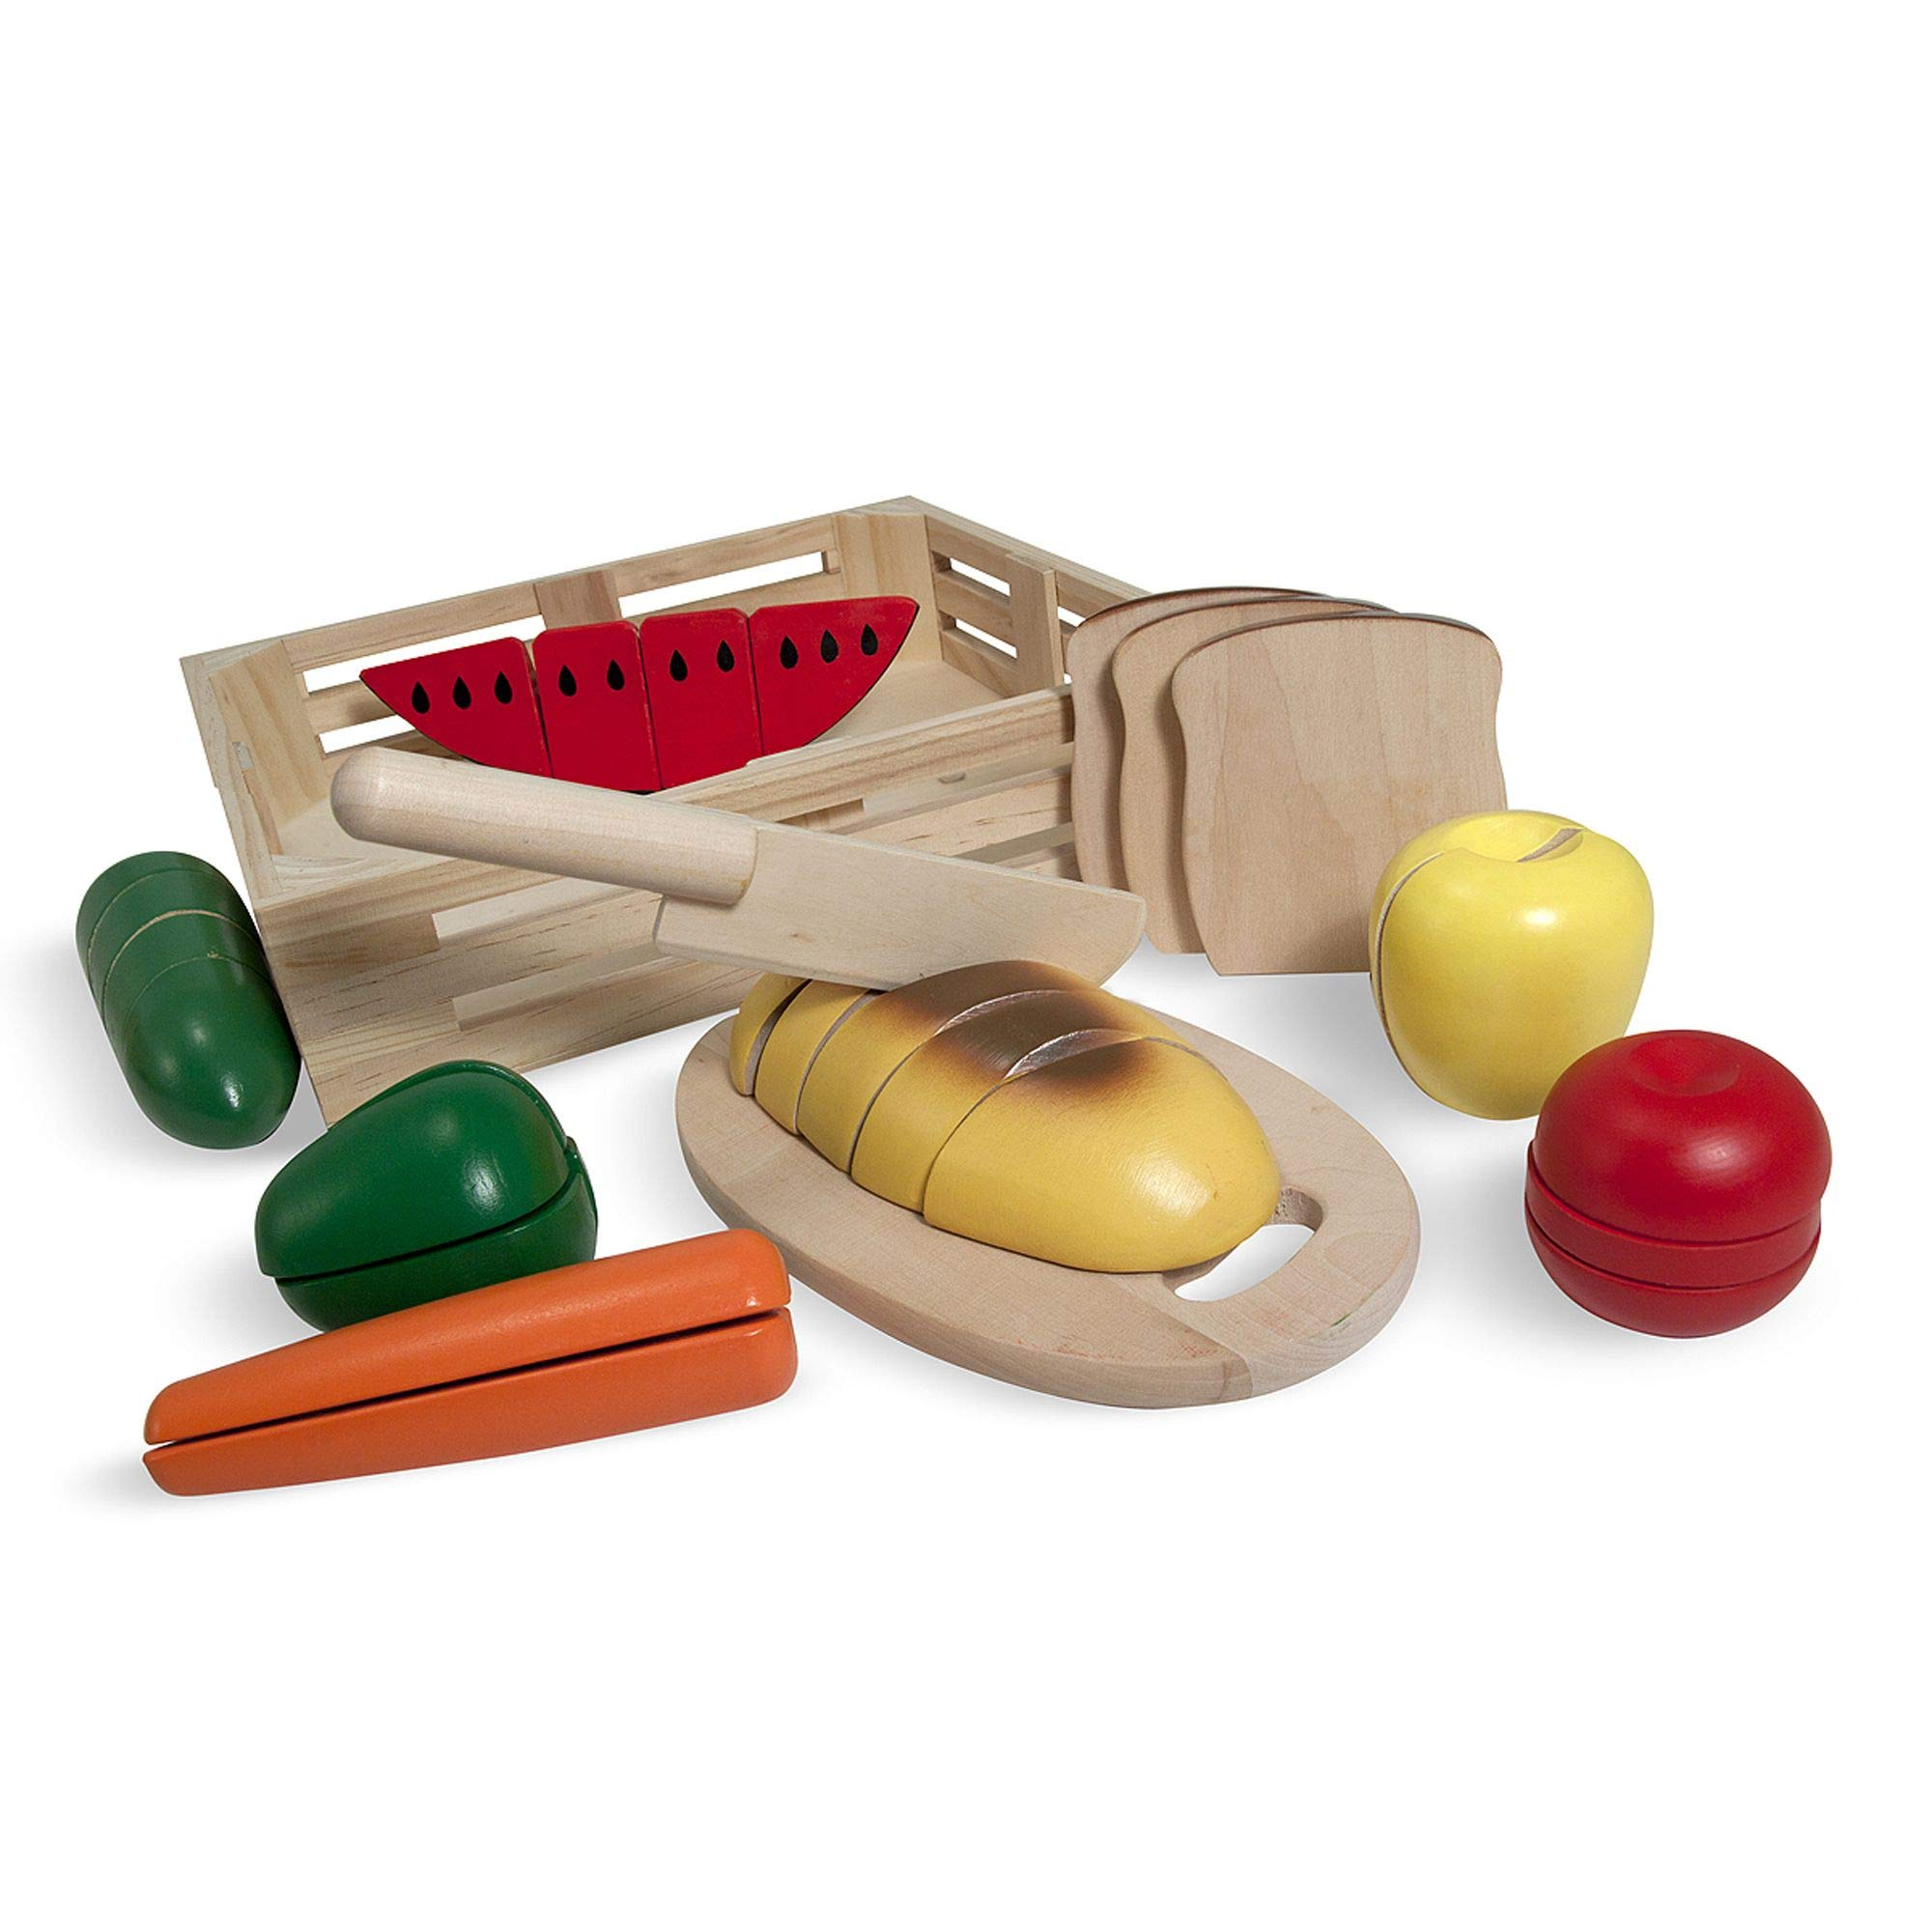 Melissa & Doug Cutting Food Wooden Play Food (Pretend Play, Self-Stick Tabs, Sturdy Wooden Construction, 2.8'' H x 12'' W x 11'' L, Great Gift for Girls and Boys - Best for 3, 4, and 5 Year Olds) by Melissa & Doug